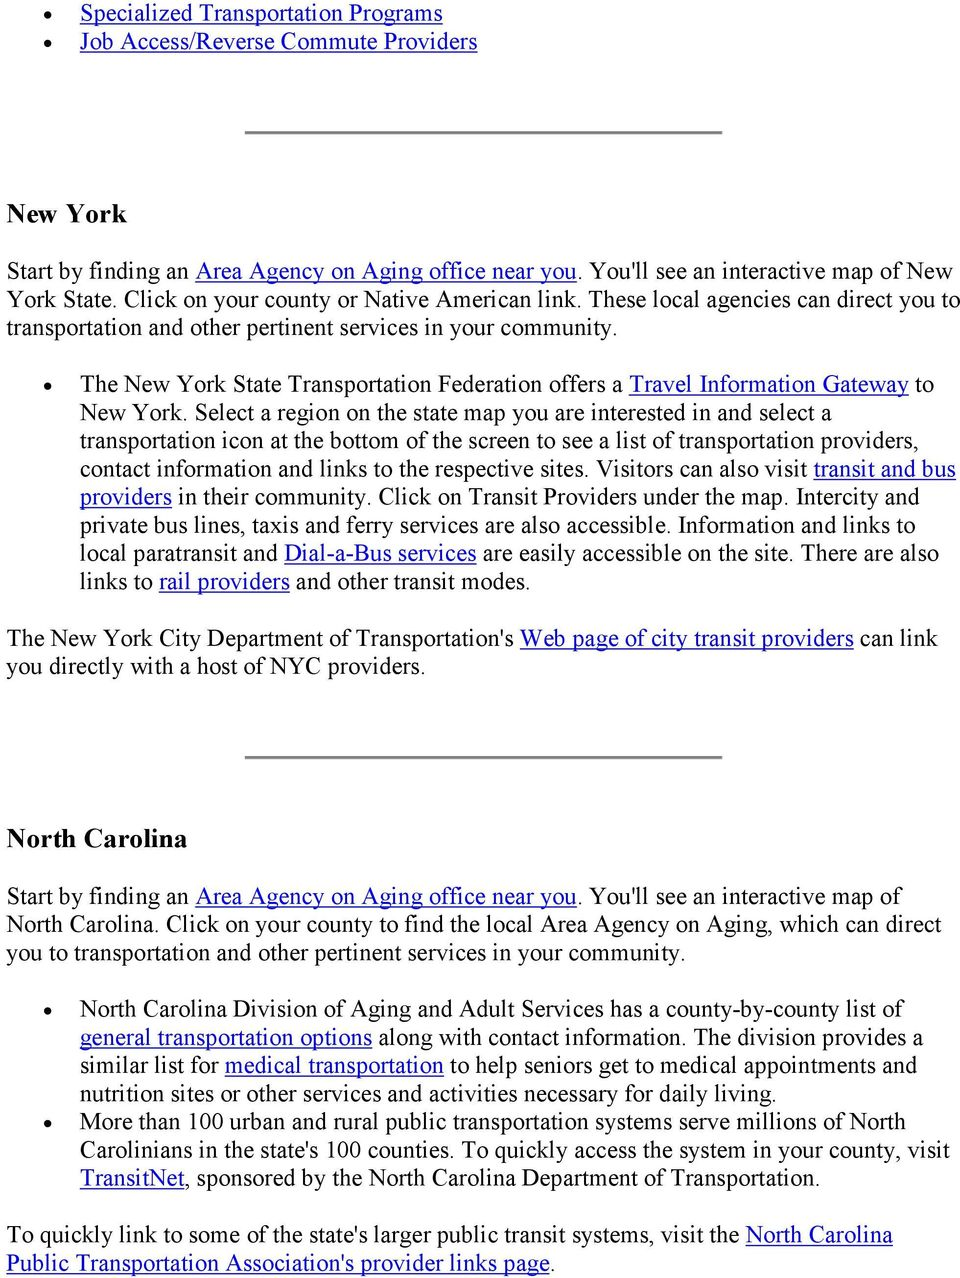 The New York State Transportation Federation offers a Travel Information Gateway to New York.